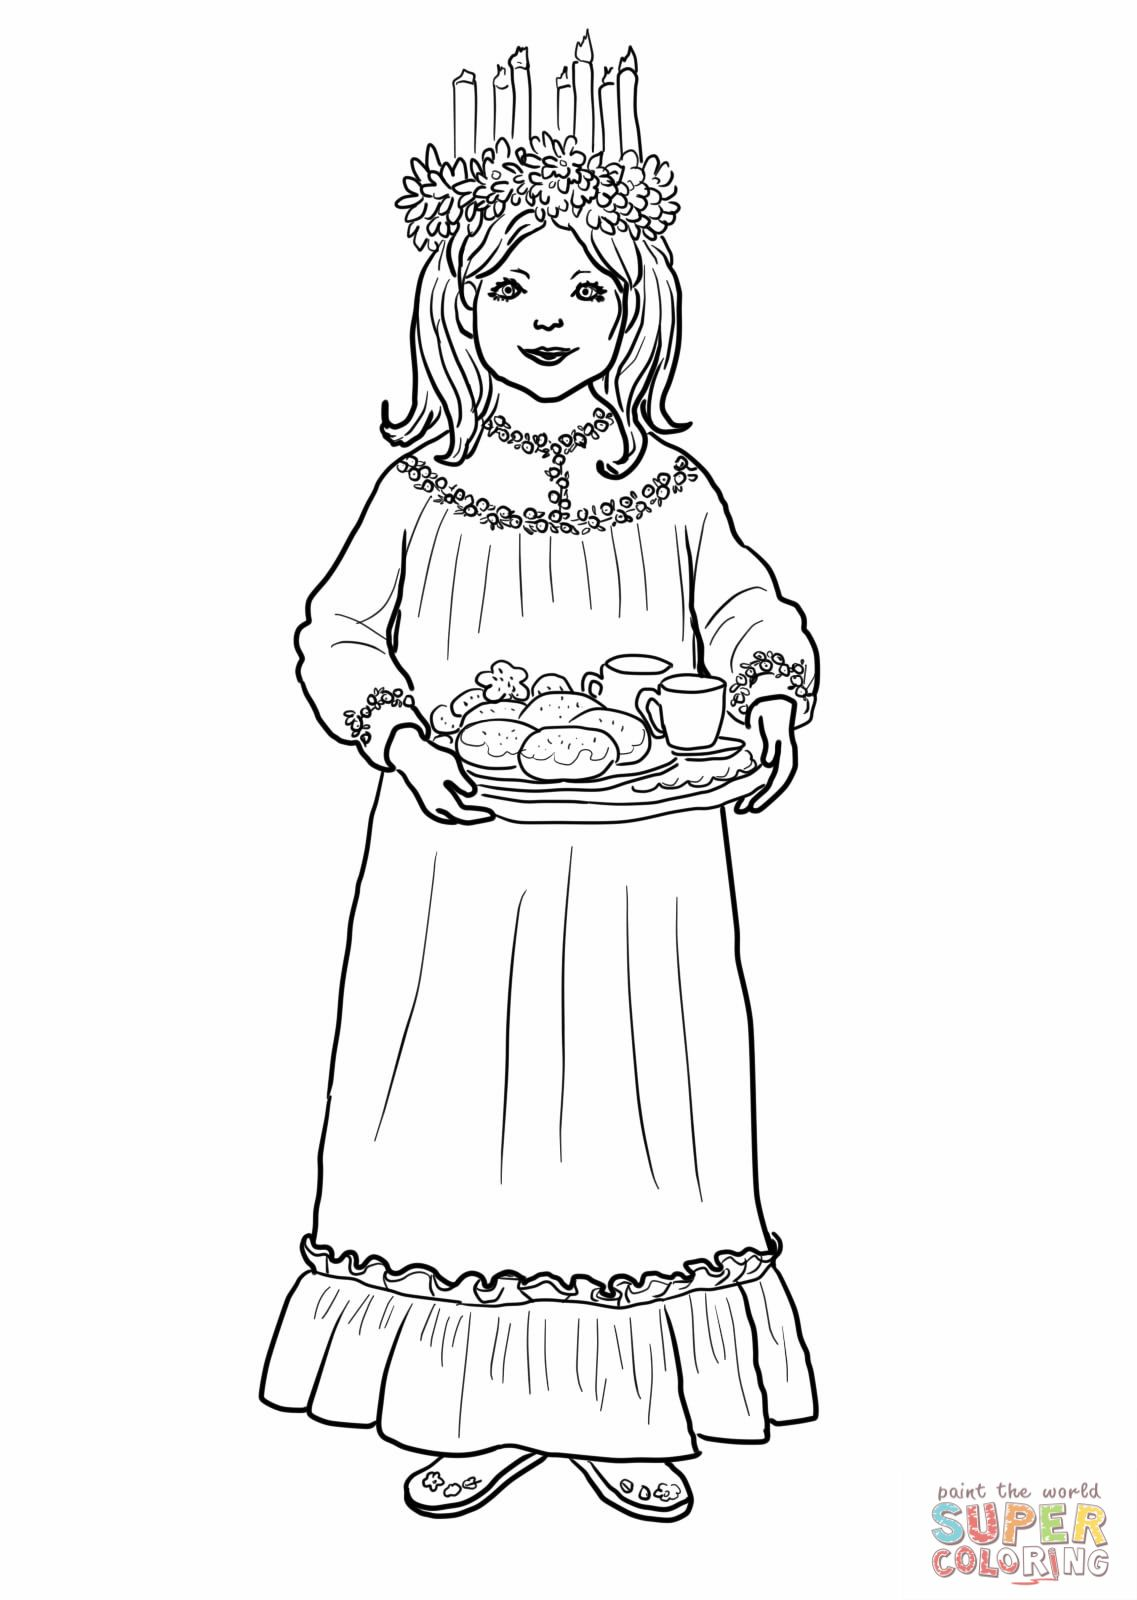 patron saint coloring pages - photo#26